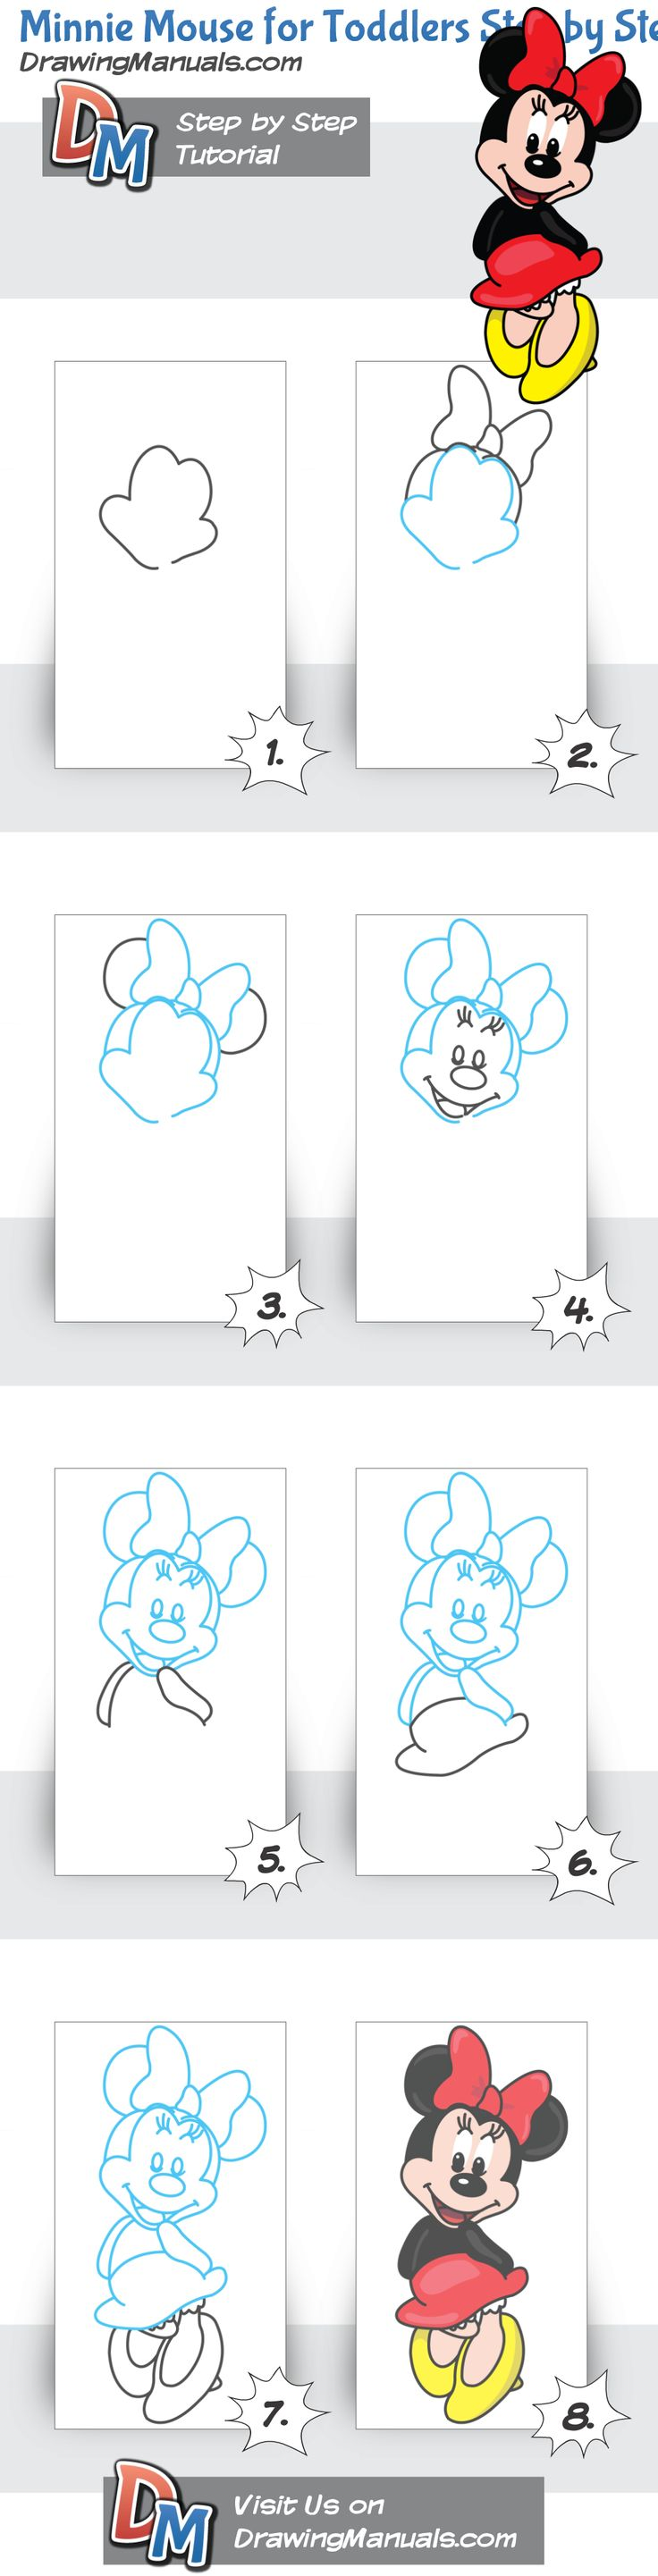 How to Draw Minnie Mouse Step-by-Step